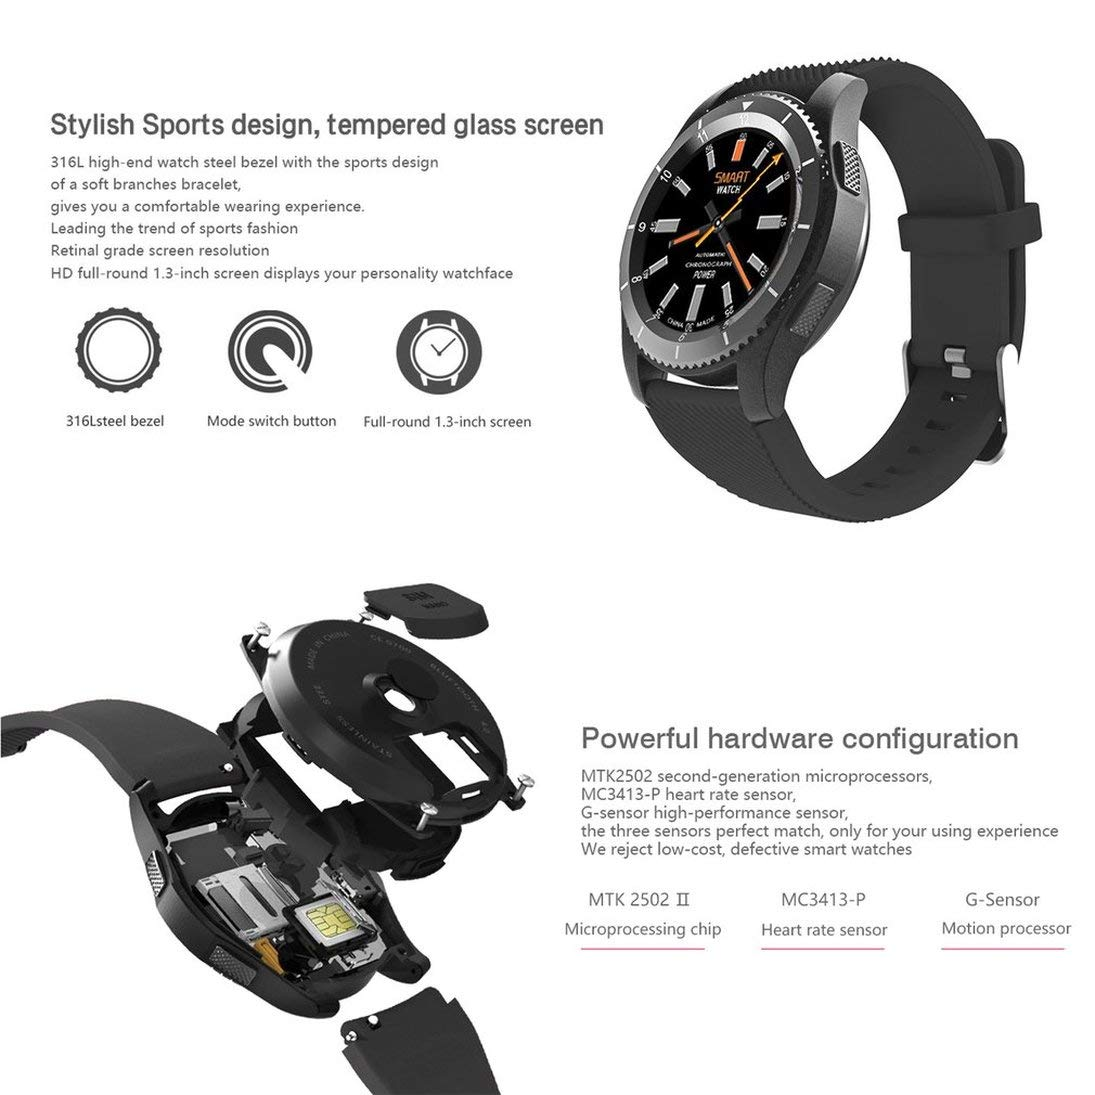 Amazon.com: Baynne No.1 G8 Smartwatch Bluetooth 4.0 MTK2502 ...